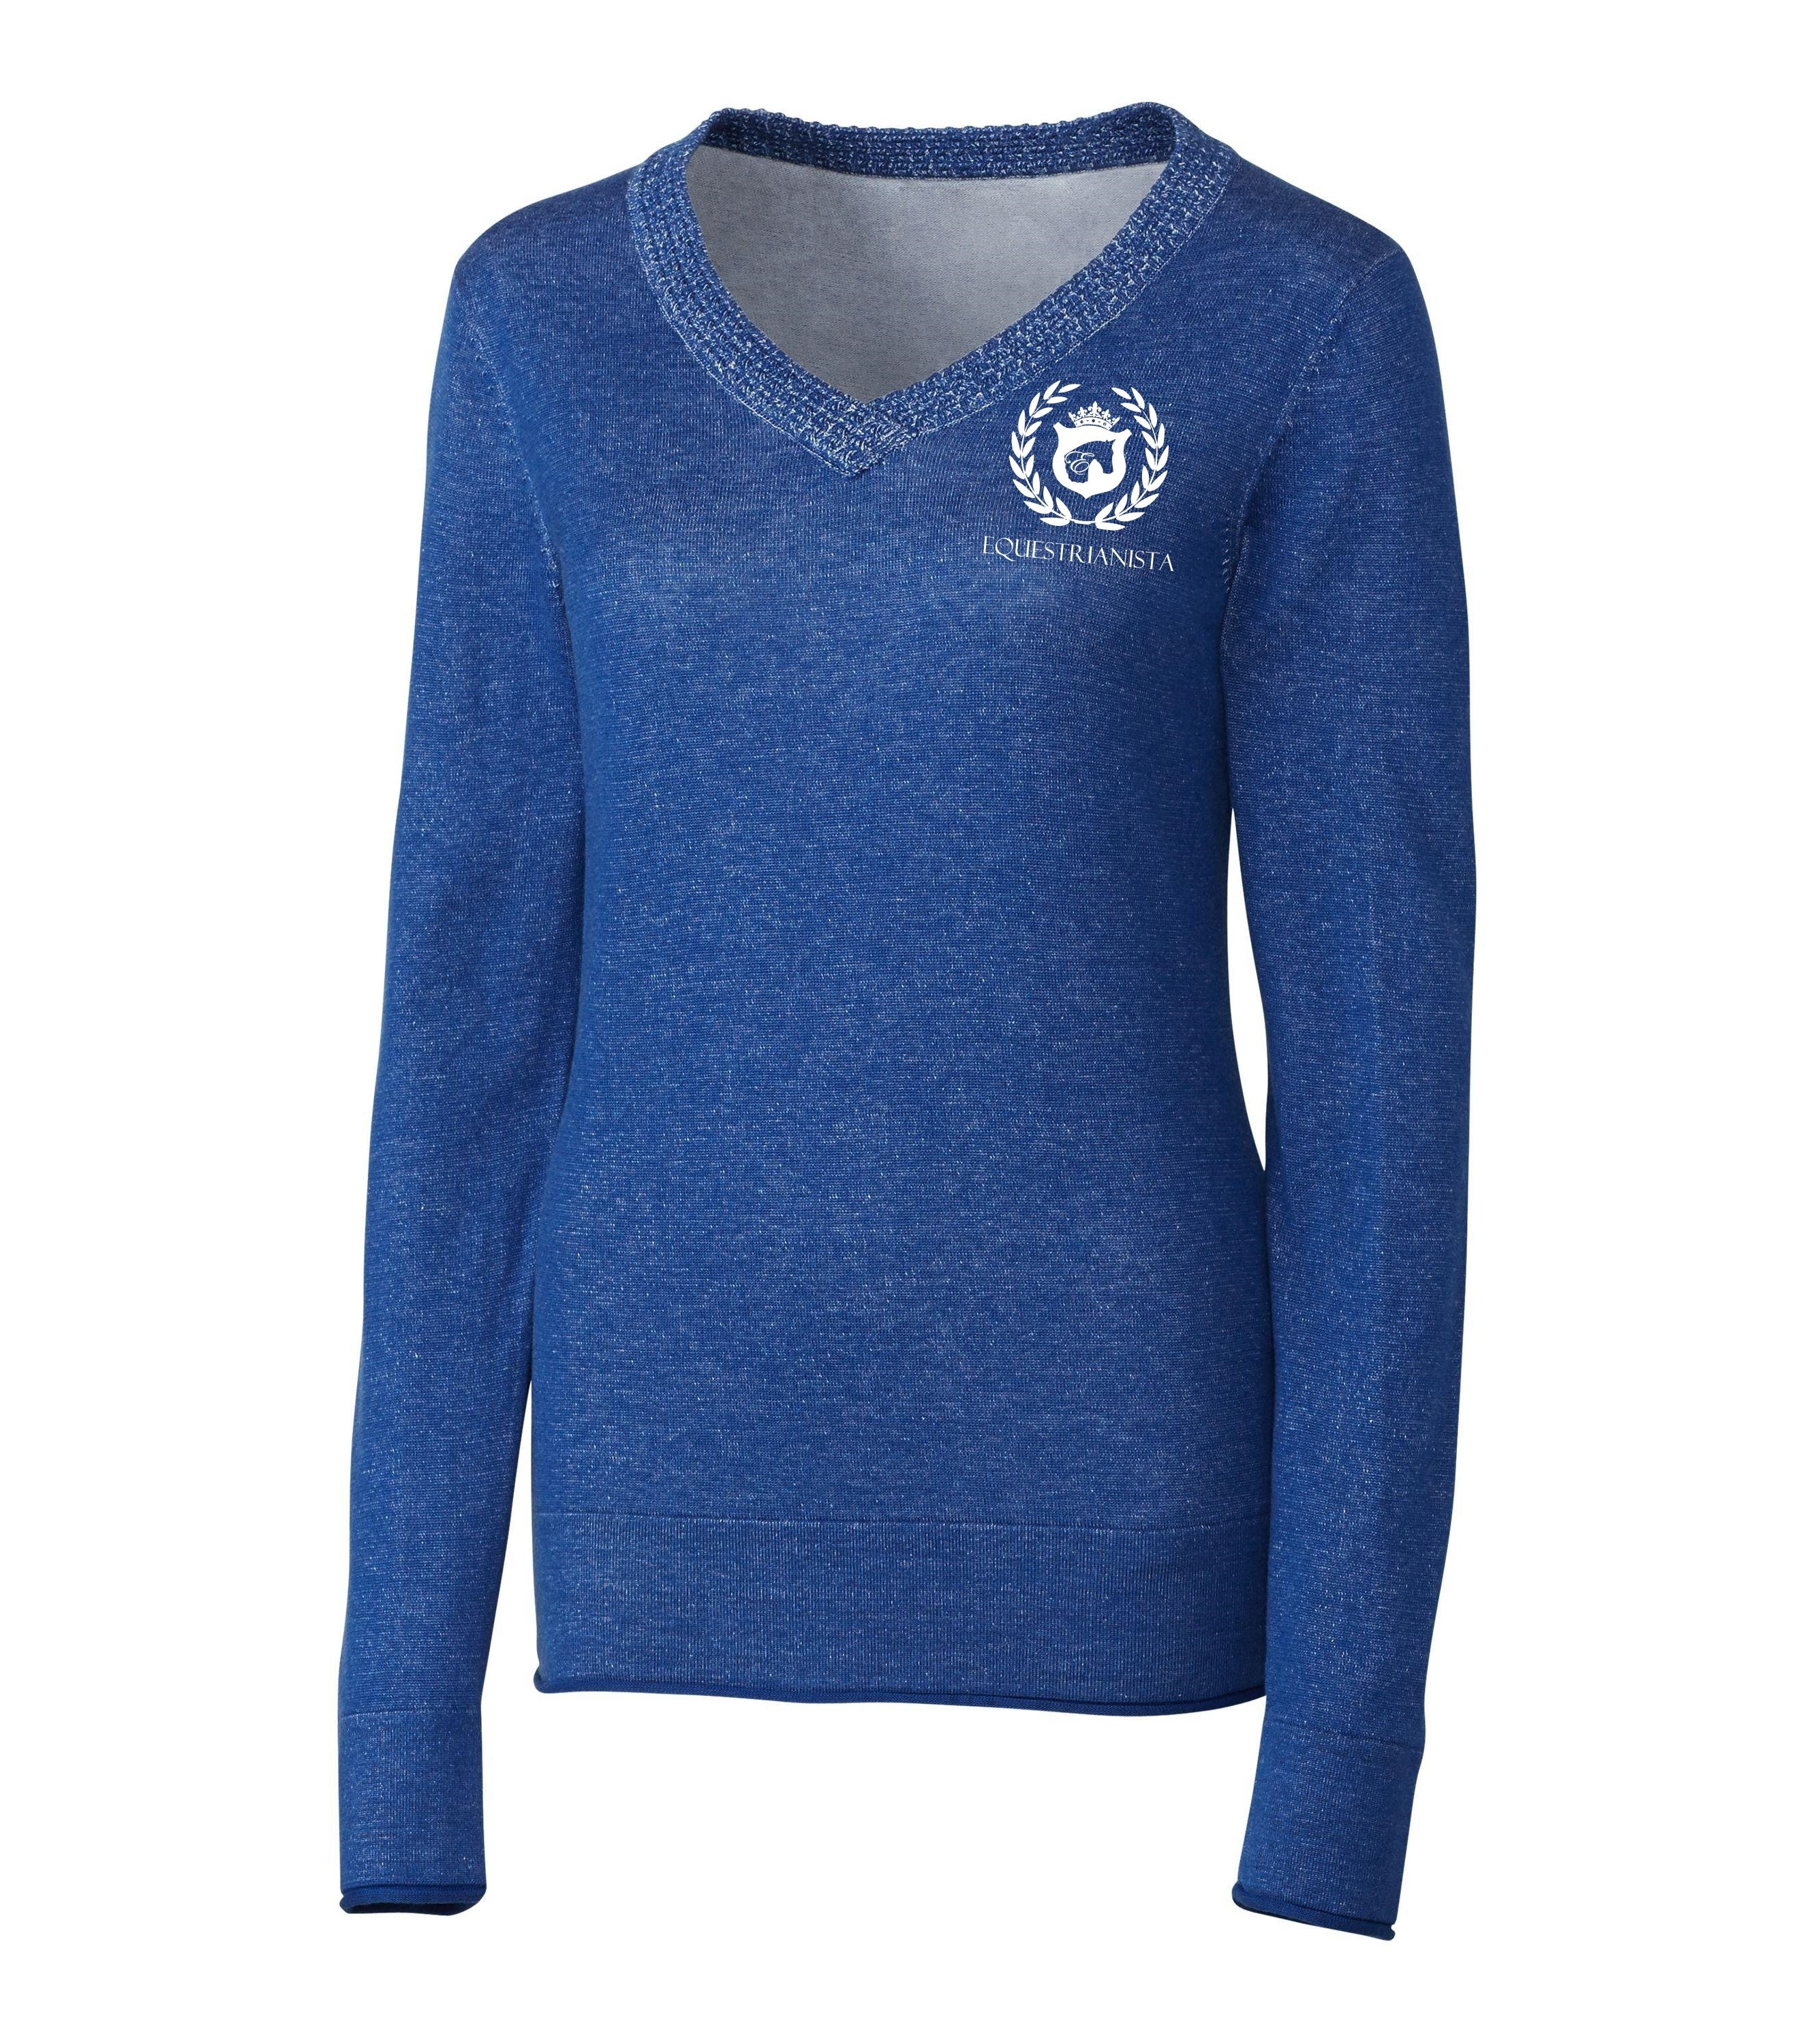 Women's Riding Sweater in Blue by Equestrianista Brand Apparel and Accessories.